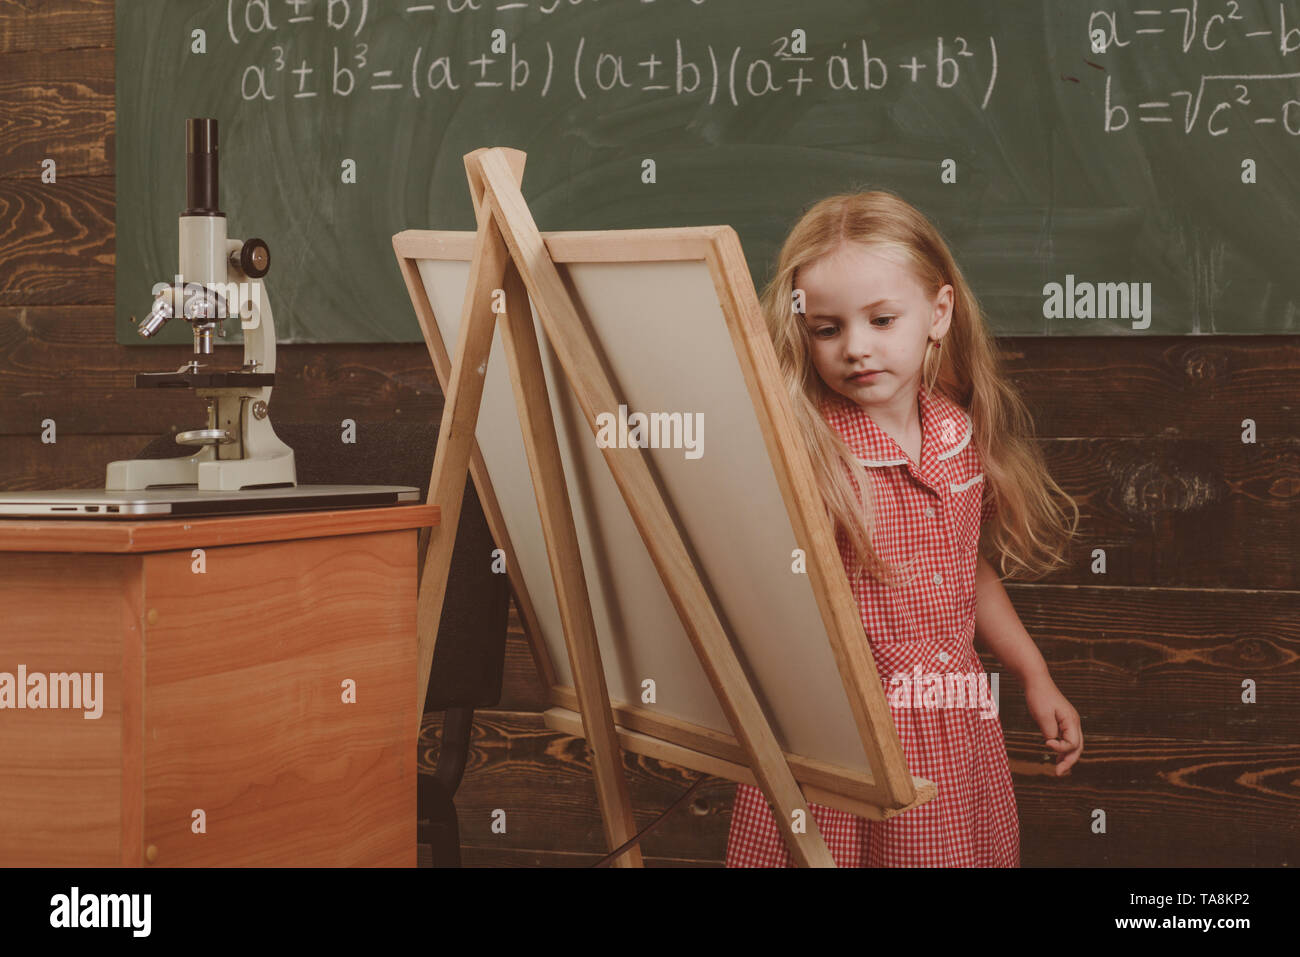 Cute girl artist painting picture on canvas on easel. Little child learn drawing on studio easel, vintage filter. - Stock Image